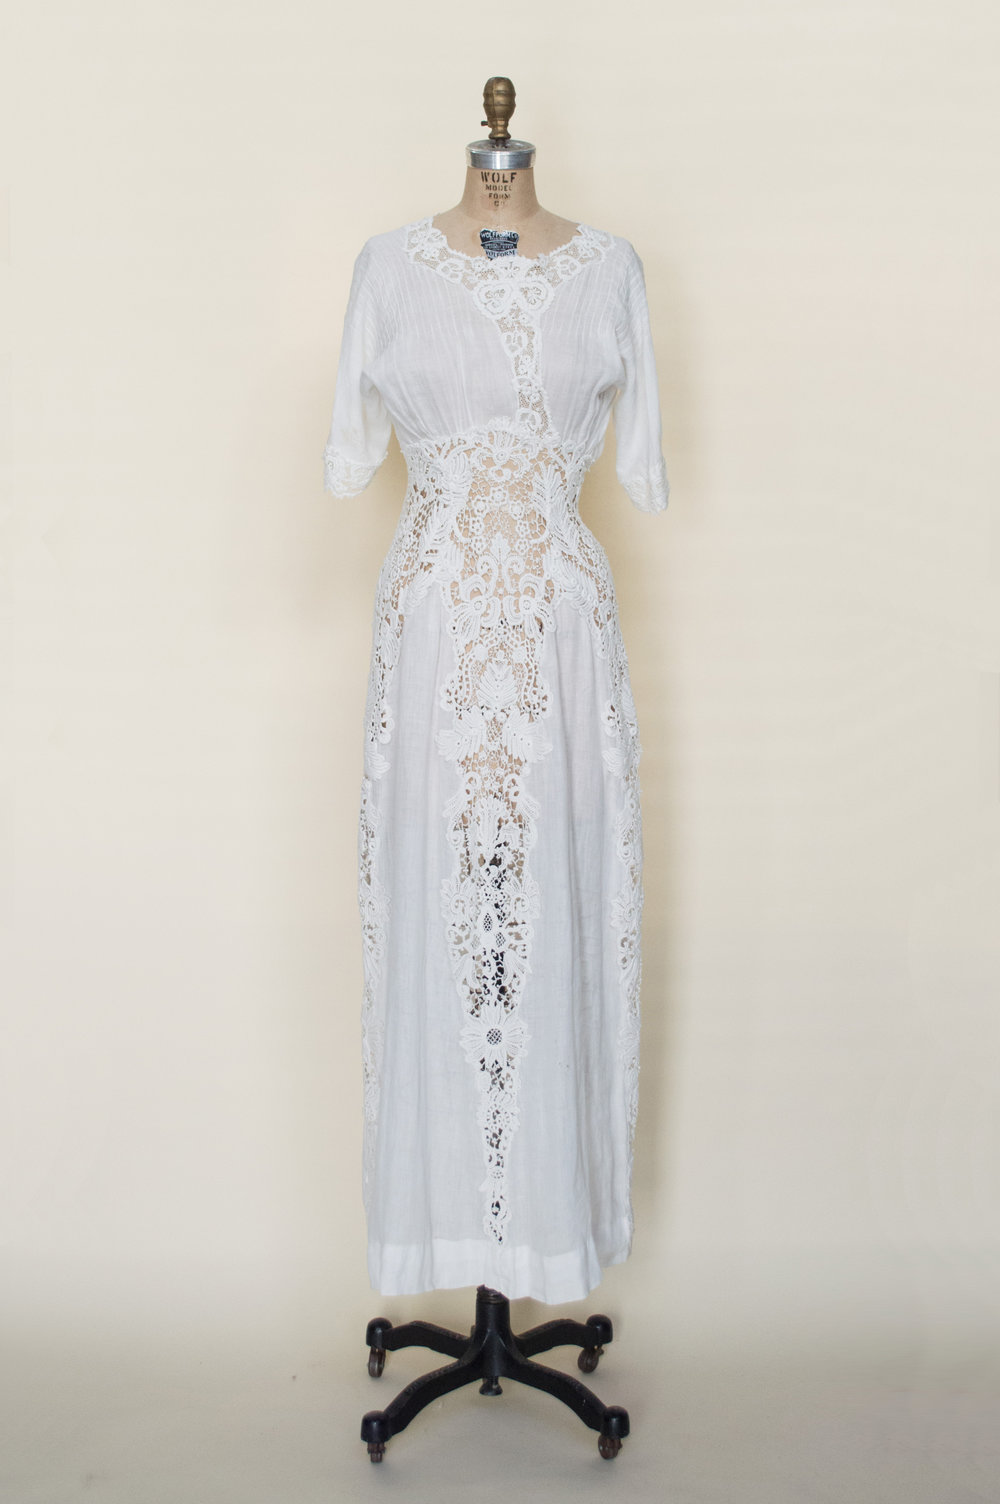 edwardian-cotton-wedding-dress (2 of 5).jpg